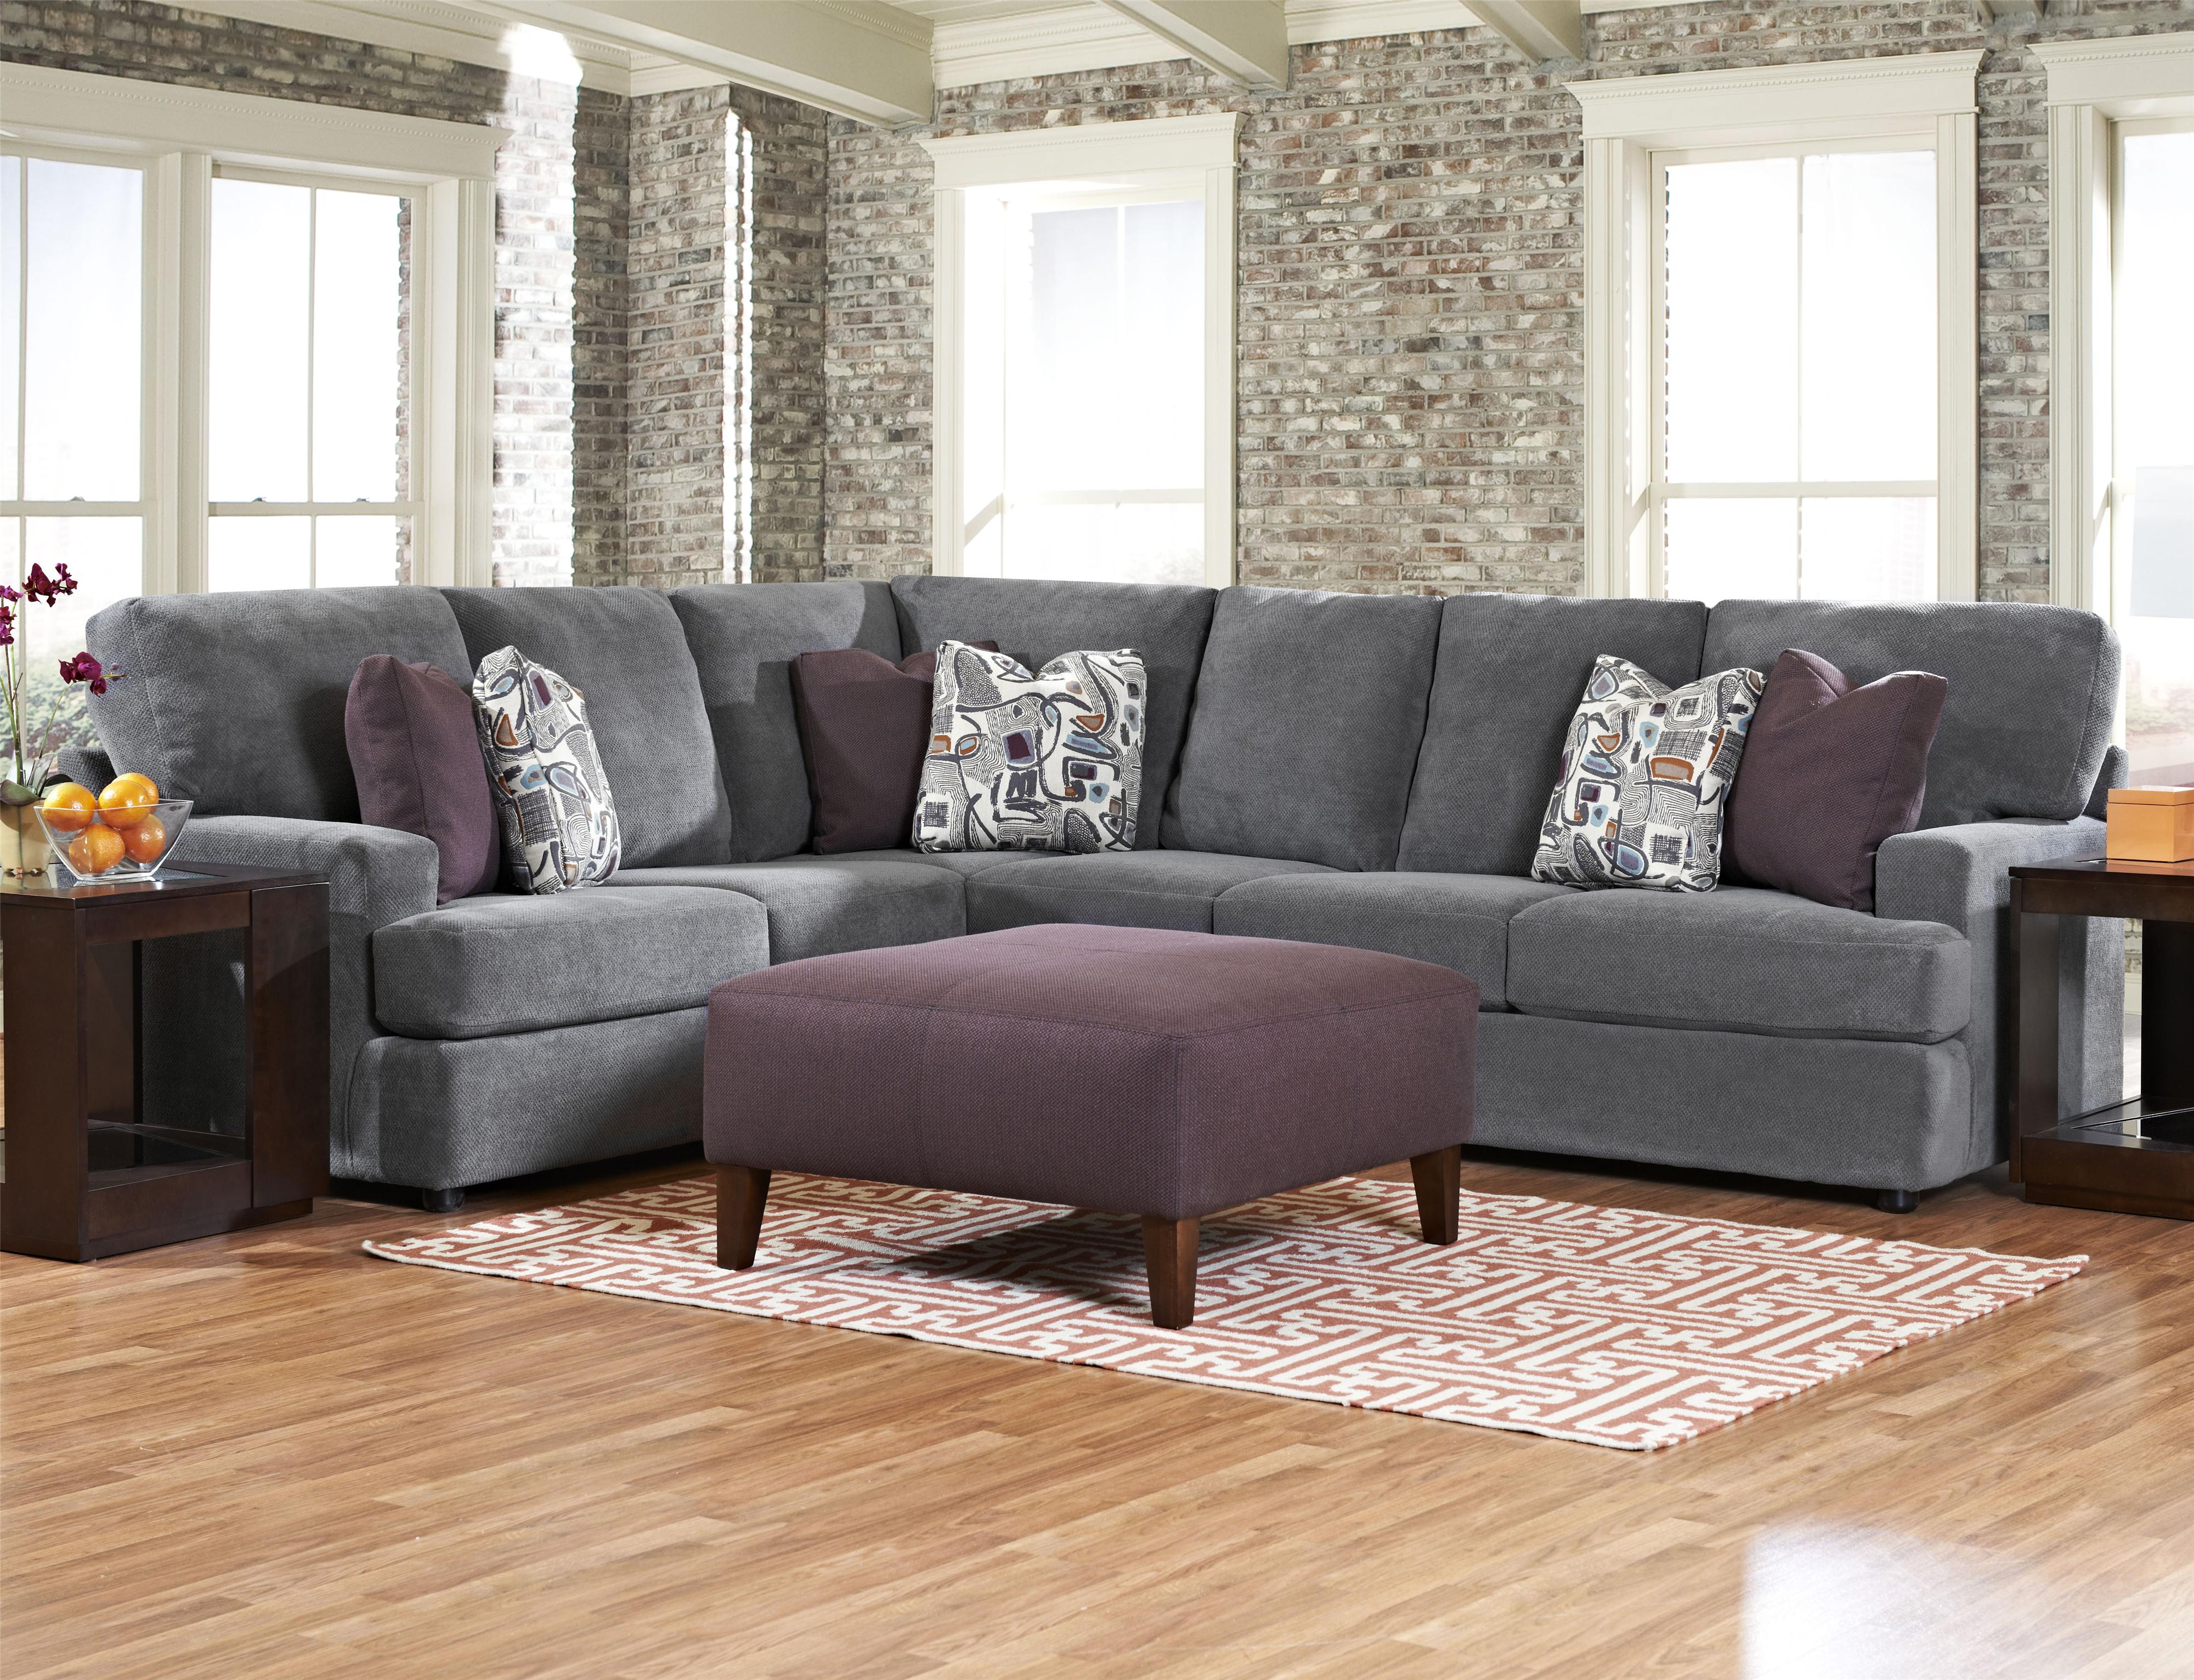 Klaussner Maclin K91500 Contemporary 2 Piece Sectional